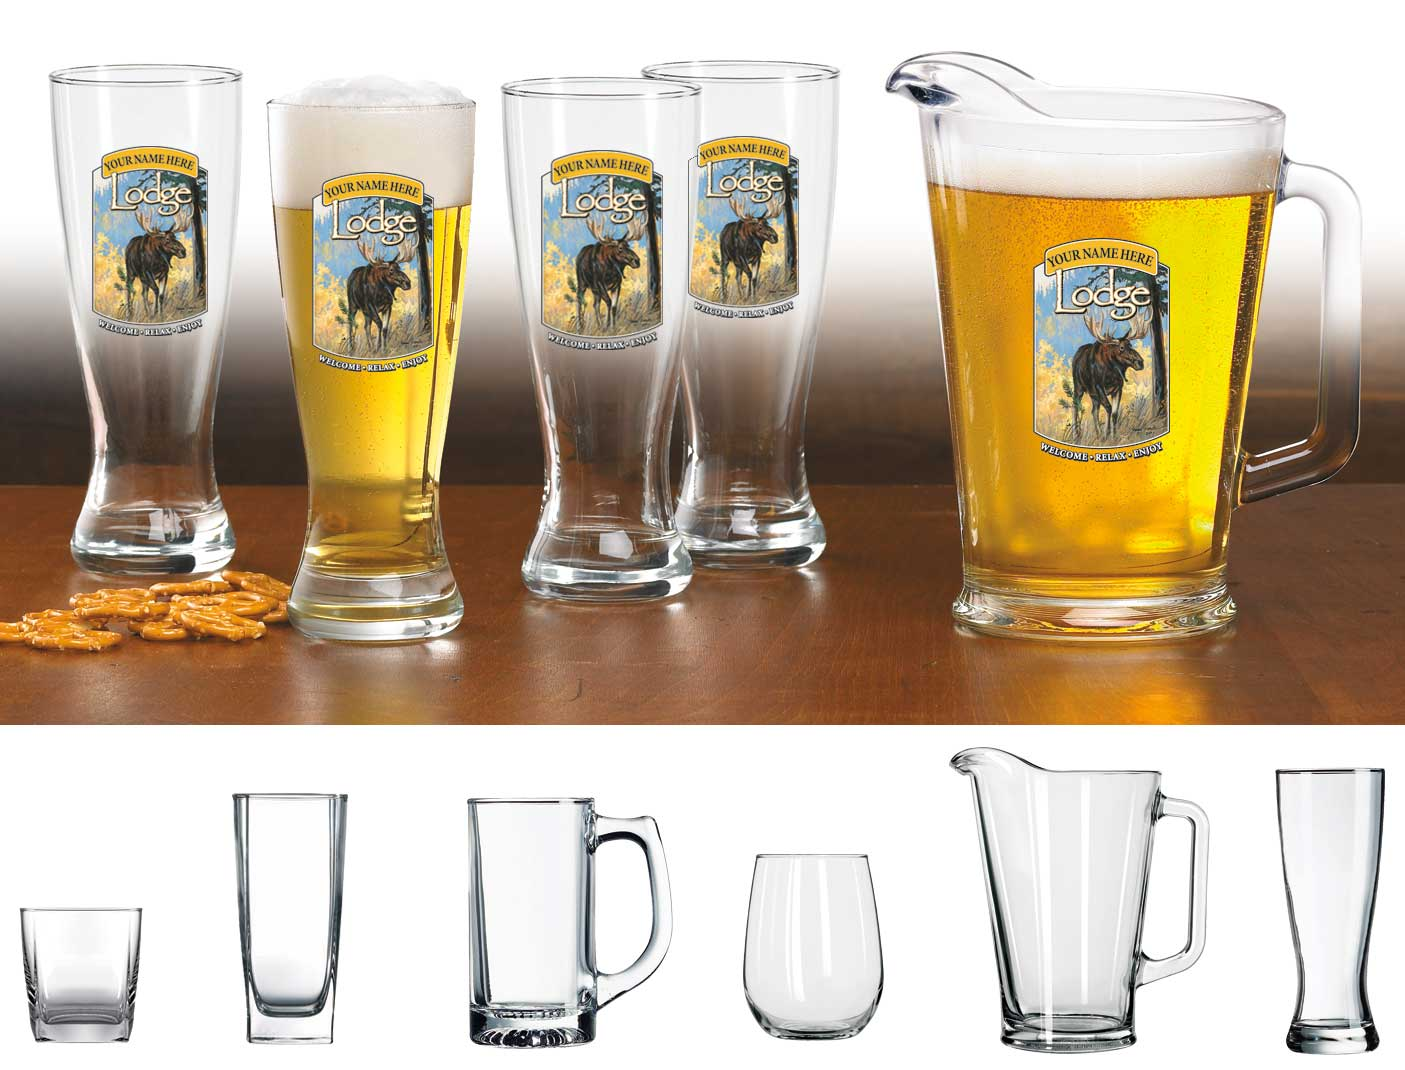 8722615503: Moose Lodge Personalized Stein Glasses (Set of 4)